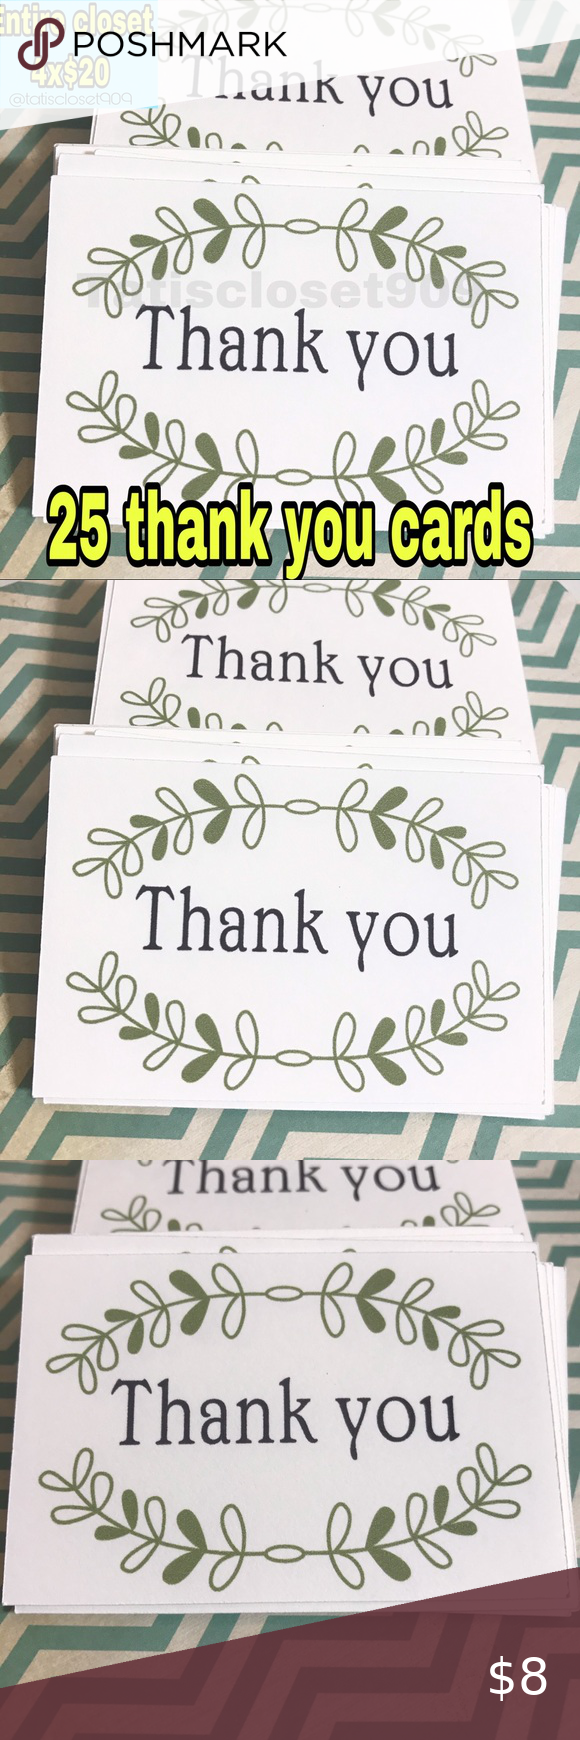 25 Thank You Cards 2 X3 Cardstock Thank You Cards Your Cards Birthday Treat Bags